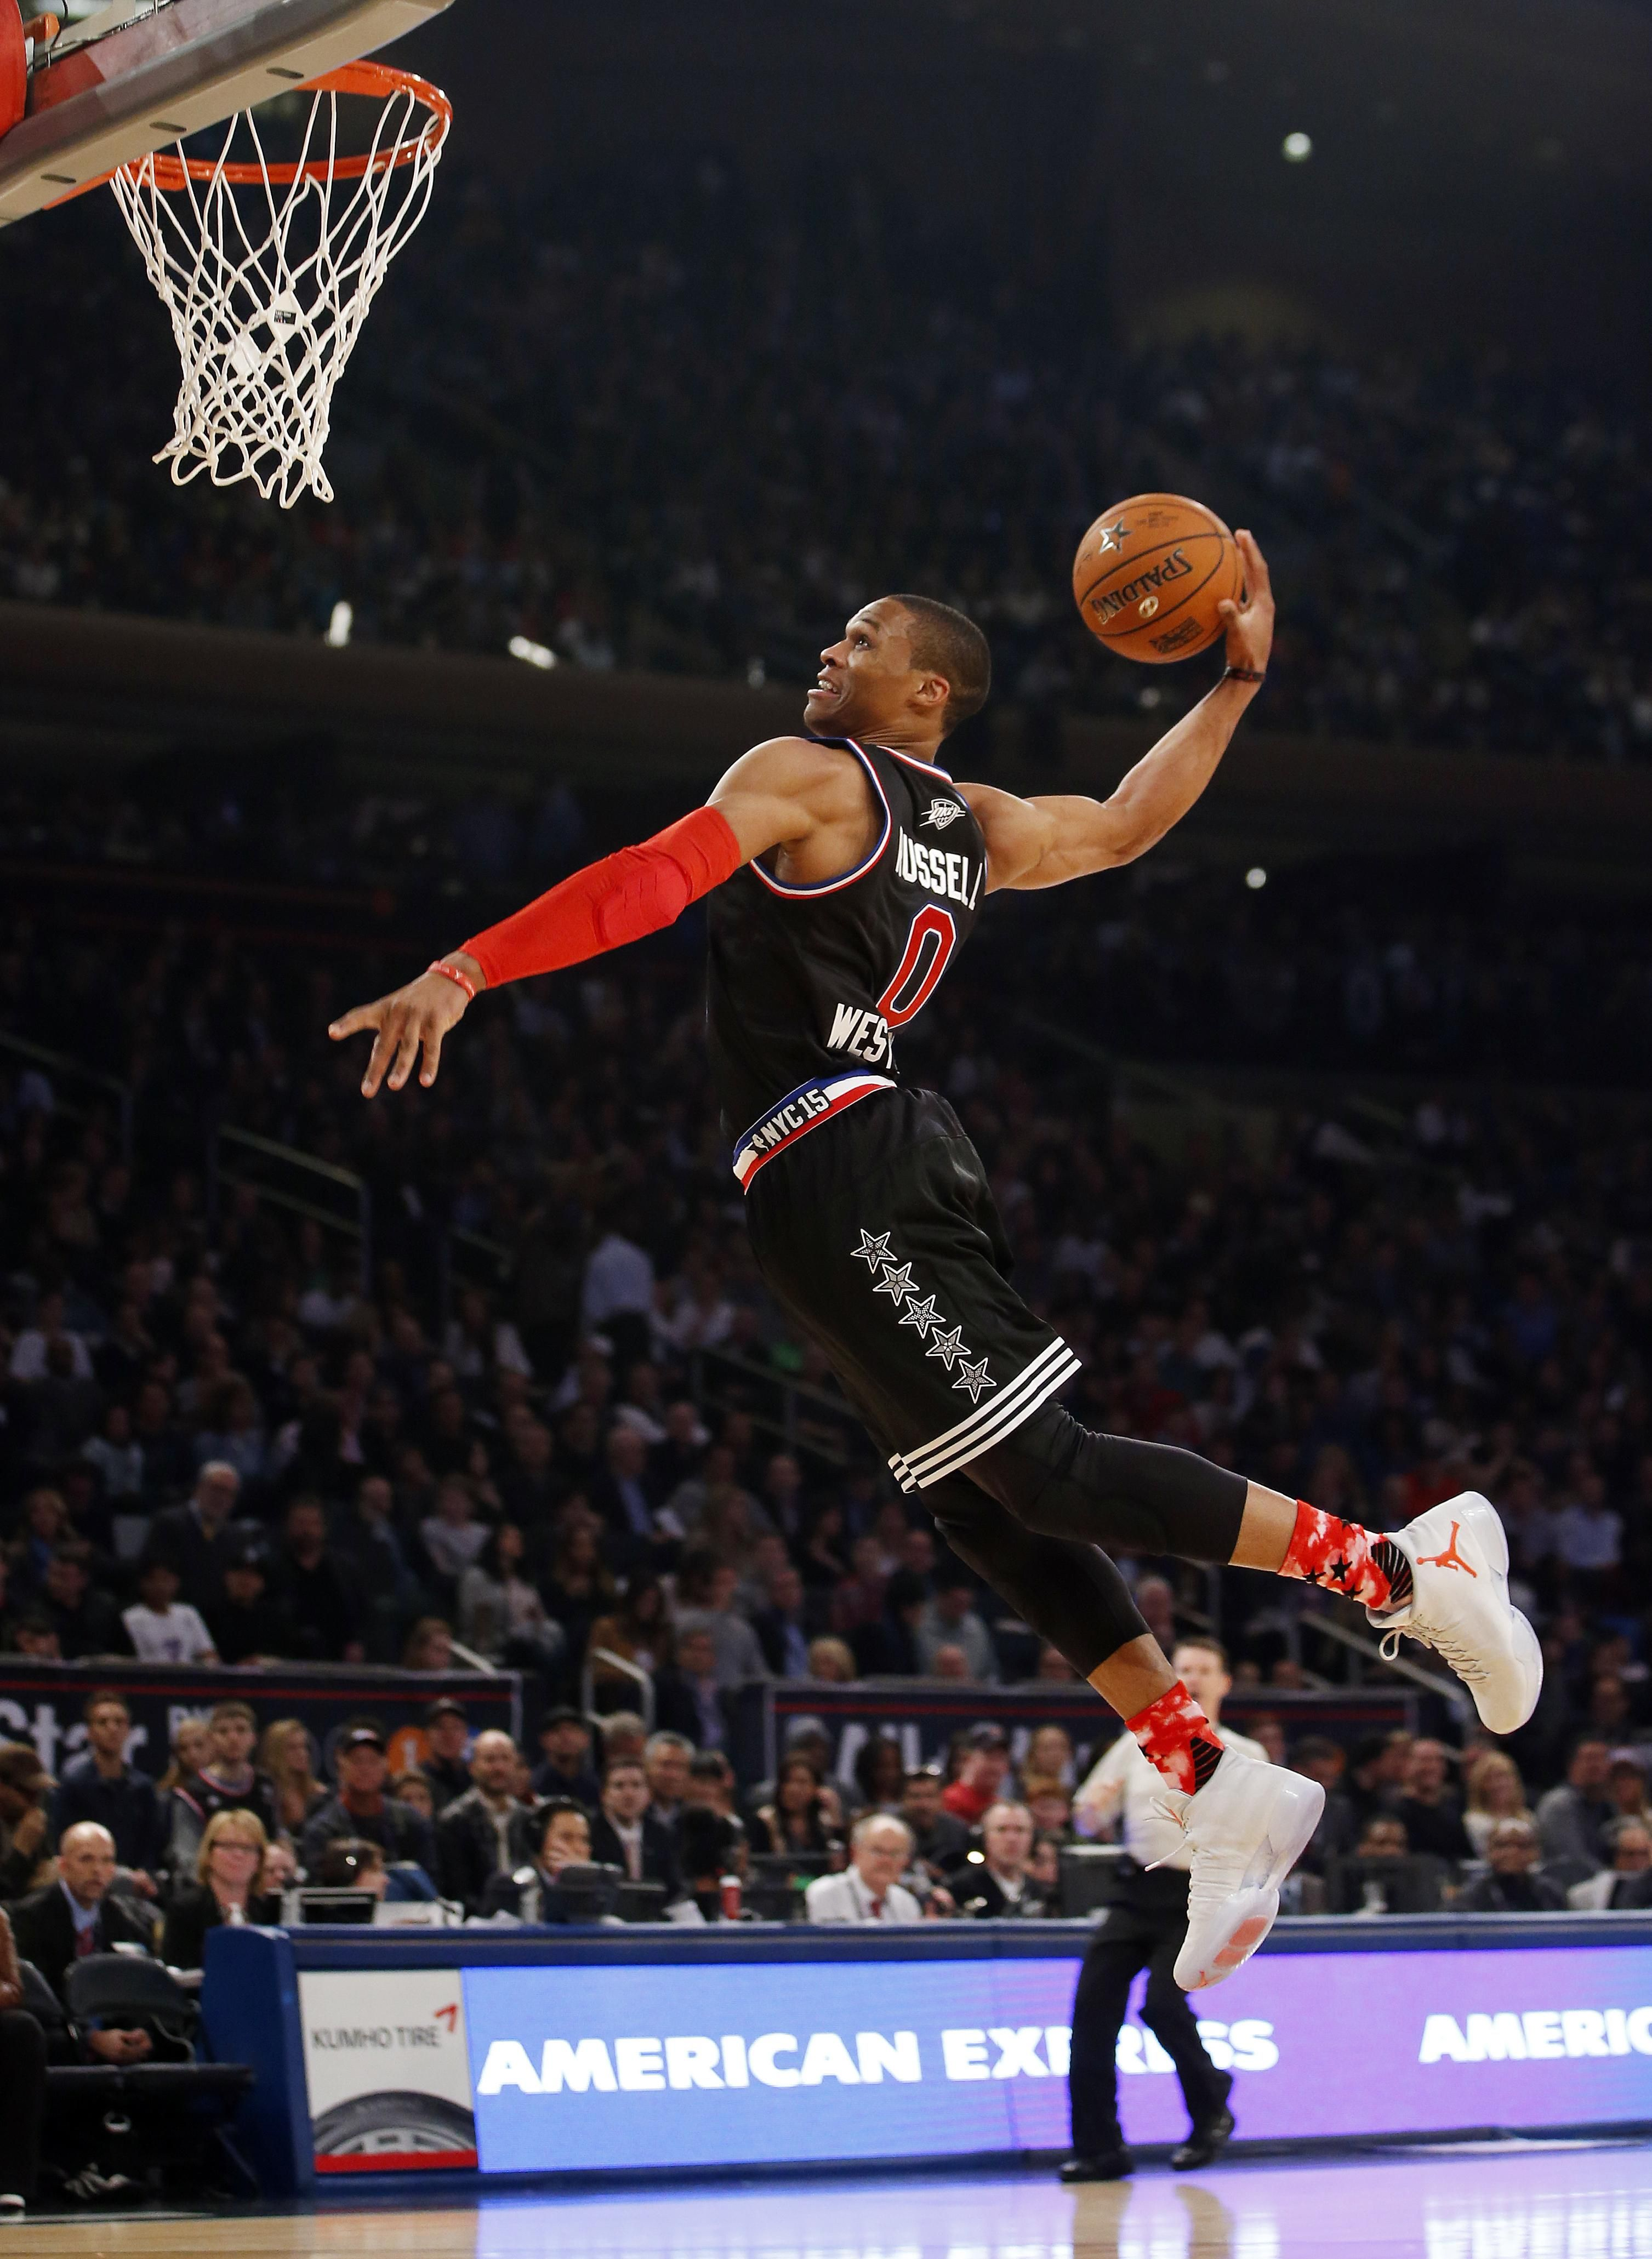 6ae216253958 russell westbrook dunk all star - Google Search